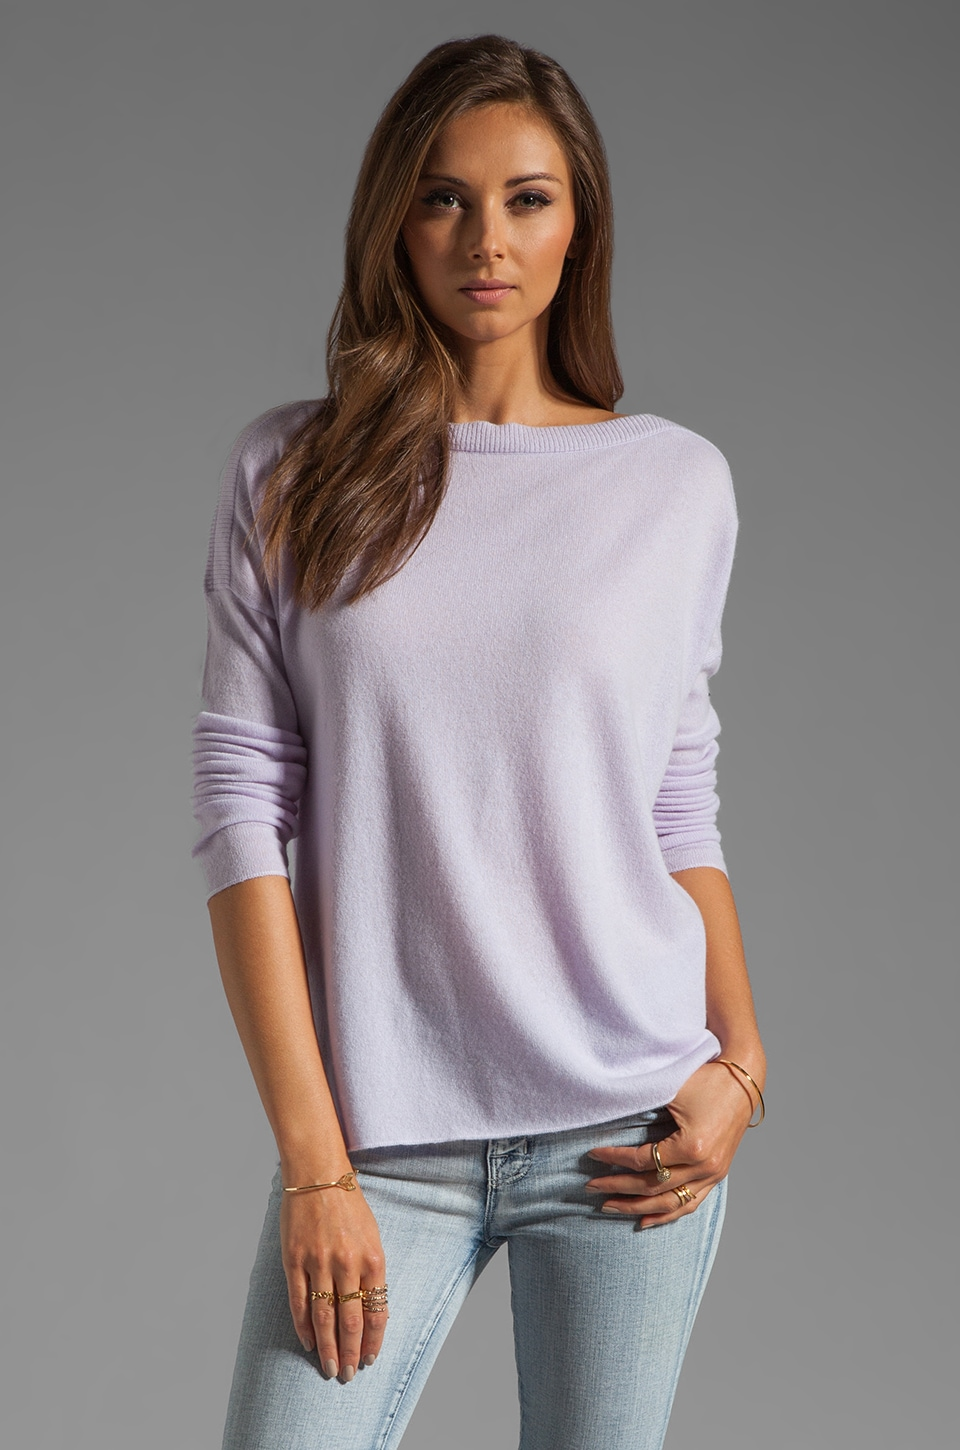 Vince Rib Insert Sweater in Lilac